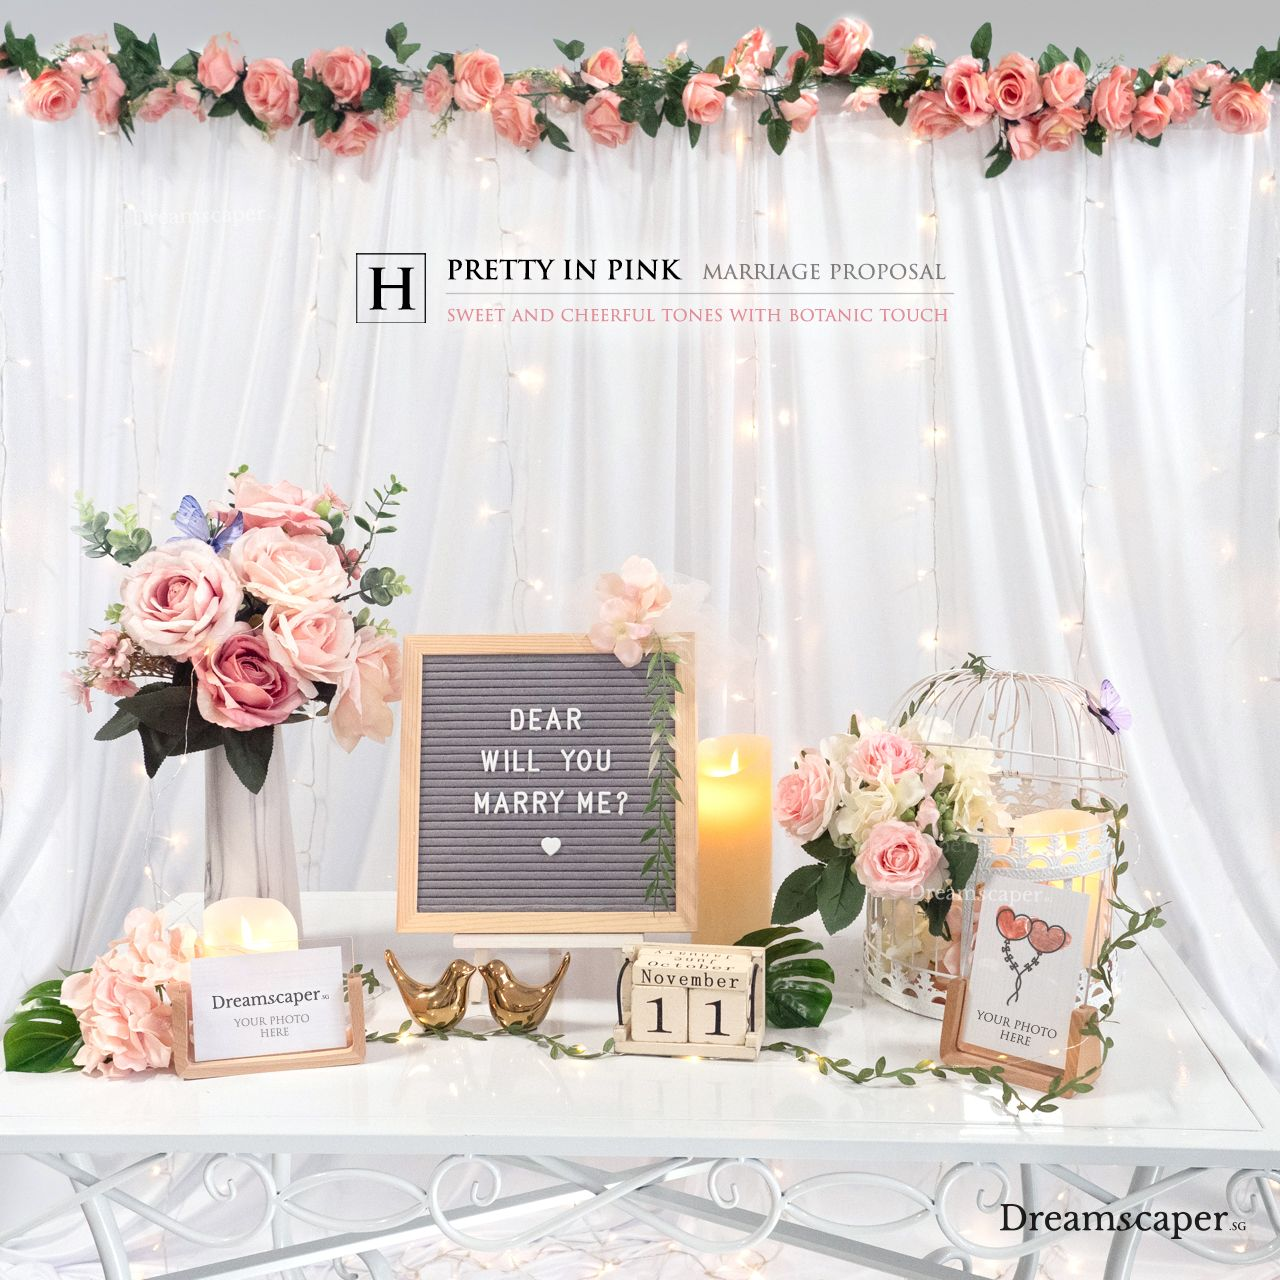 Singapore Marriage Proposal Package - Pretty In Pink